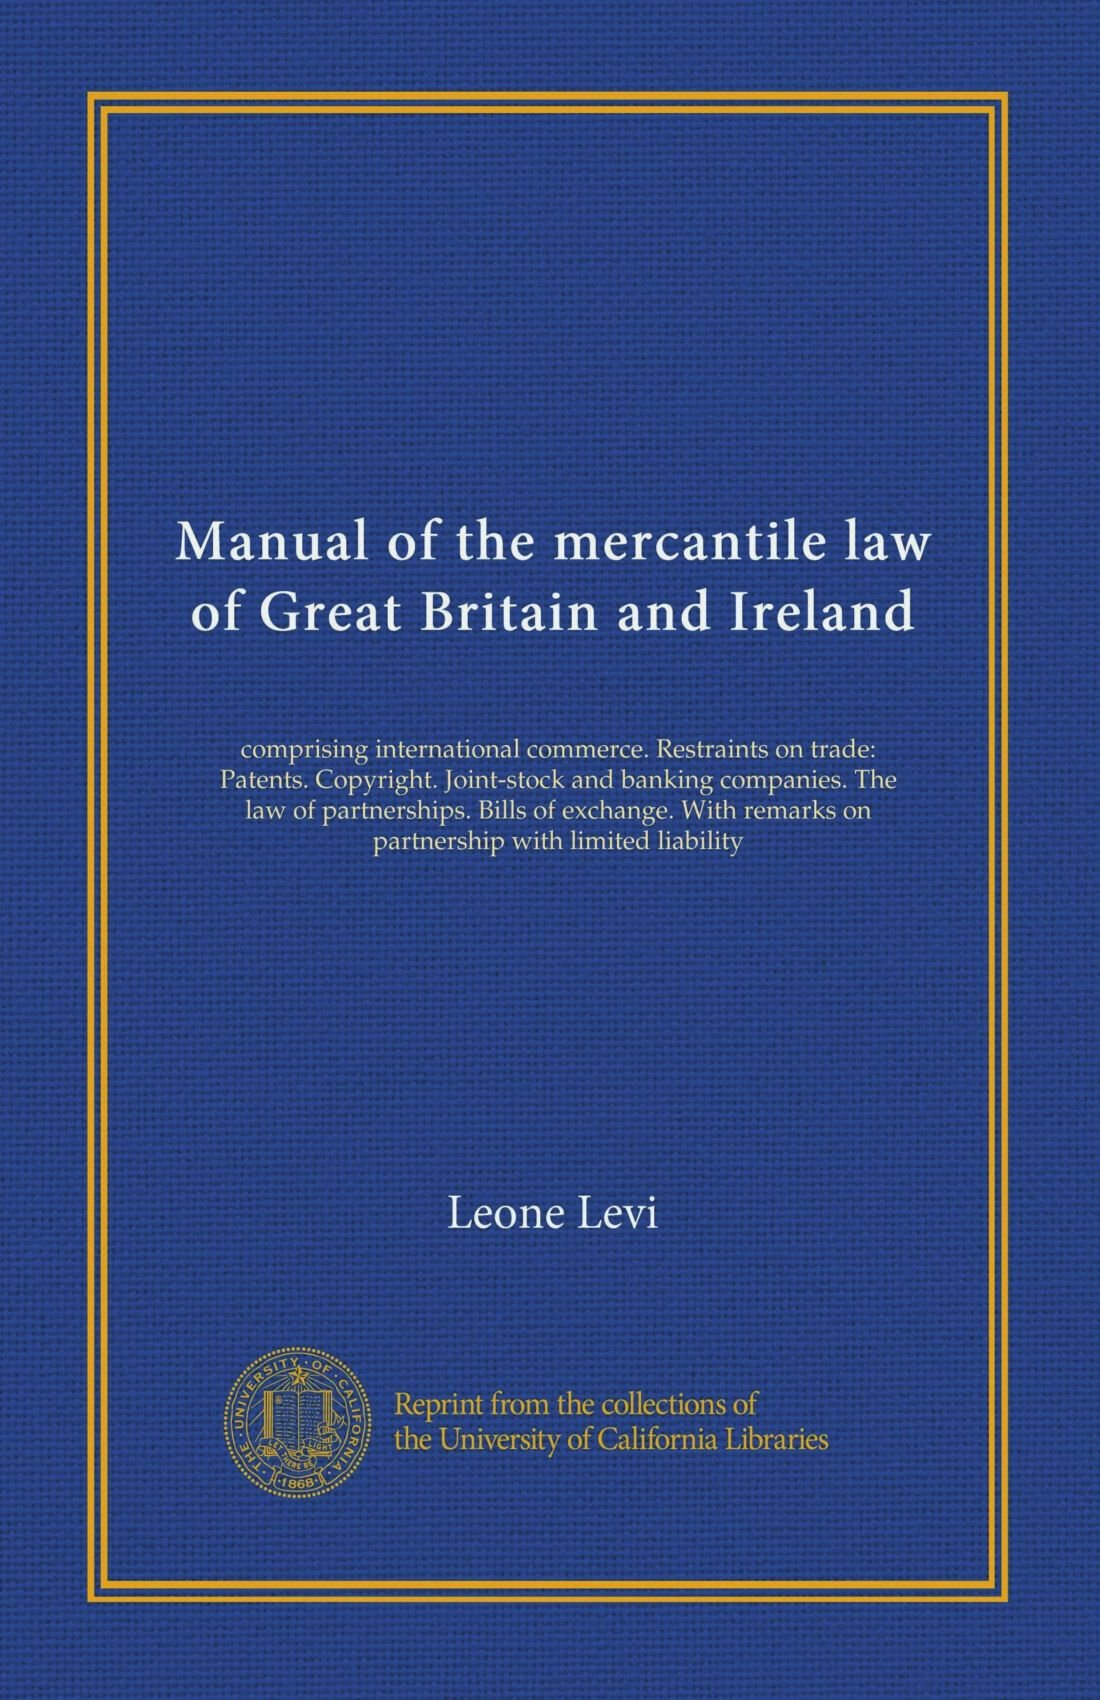 Manual of the mercantile law of Great Britain and Ireland: comprising international commerce. Restraints on trade: Patents. Copyright. Joint-stock and ... remarks on partnership with limited liability pdf epub